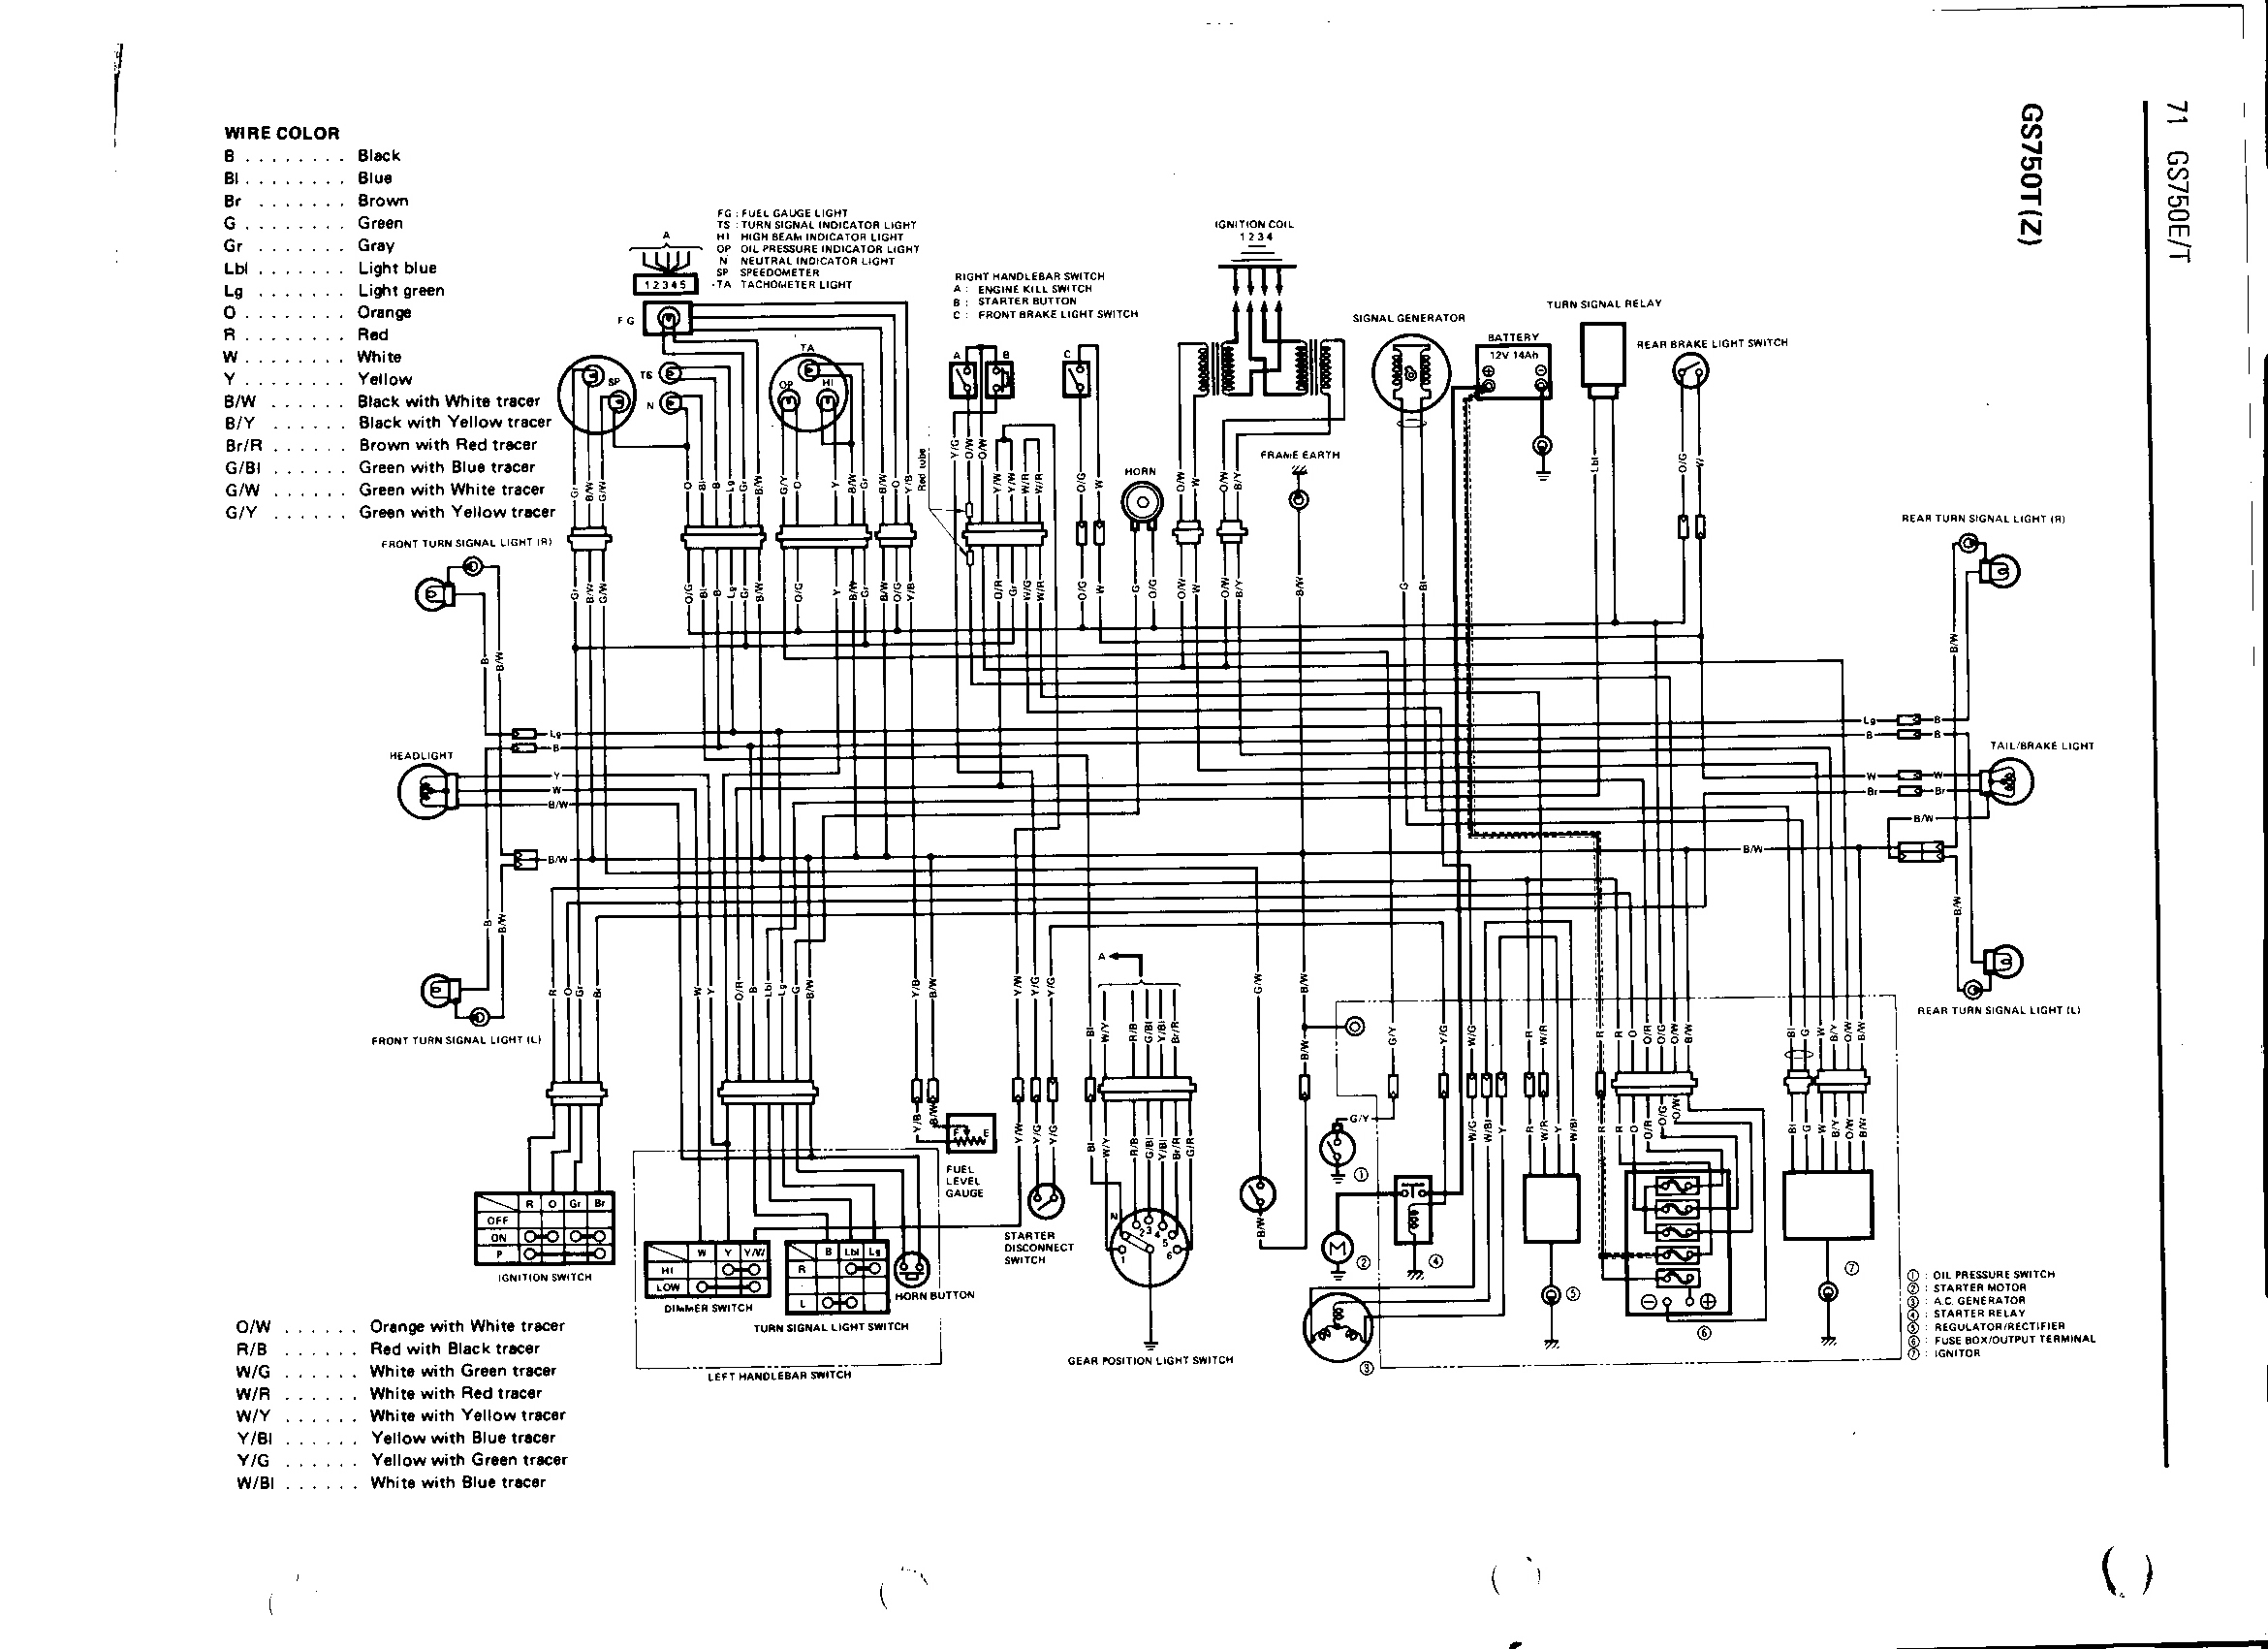 1978 Suzuki Gs550 Wiring Diagram : 32 Wiring Diagram